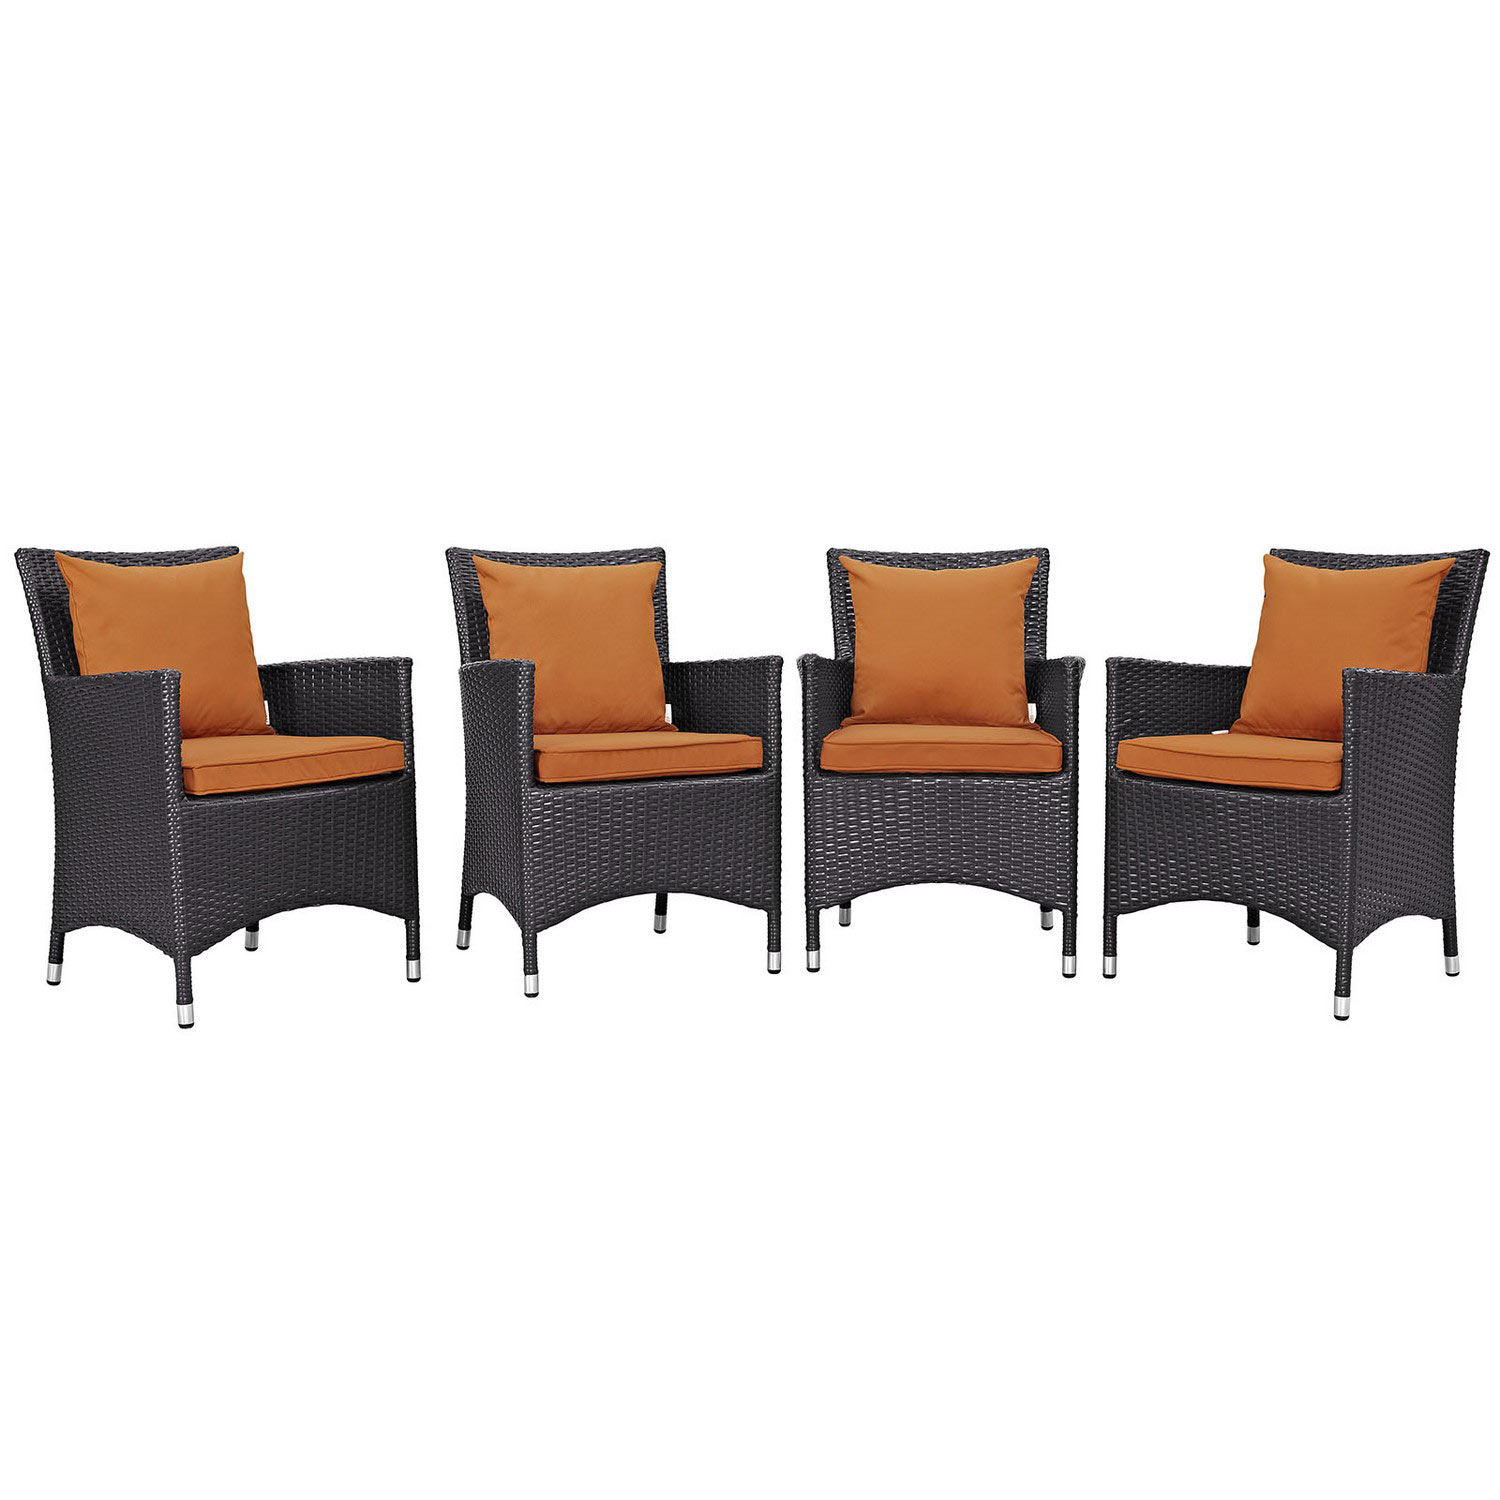 Modway Convene 4 Piece Outdoor Patio Dining Set - Espresso Orange